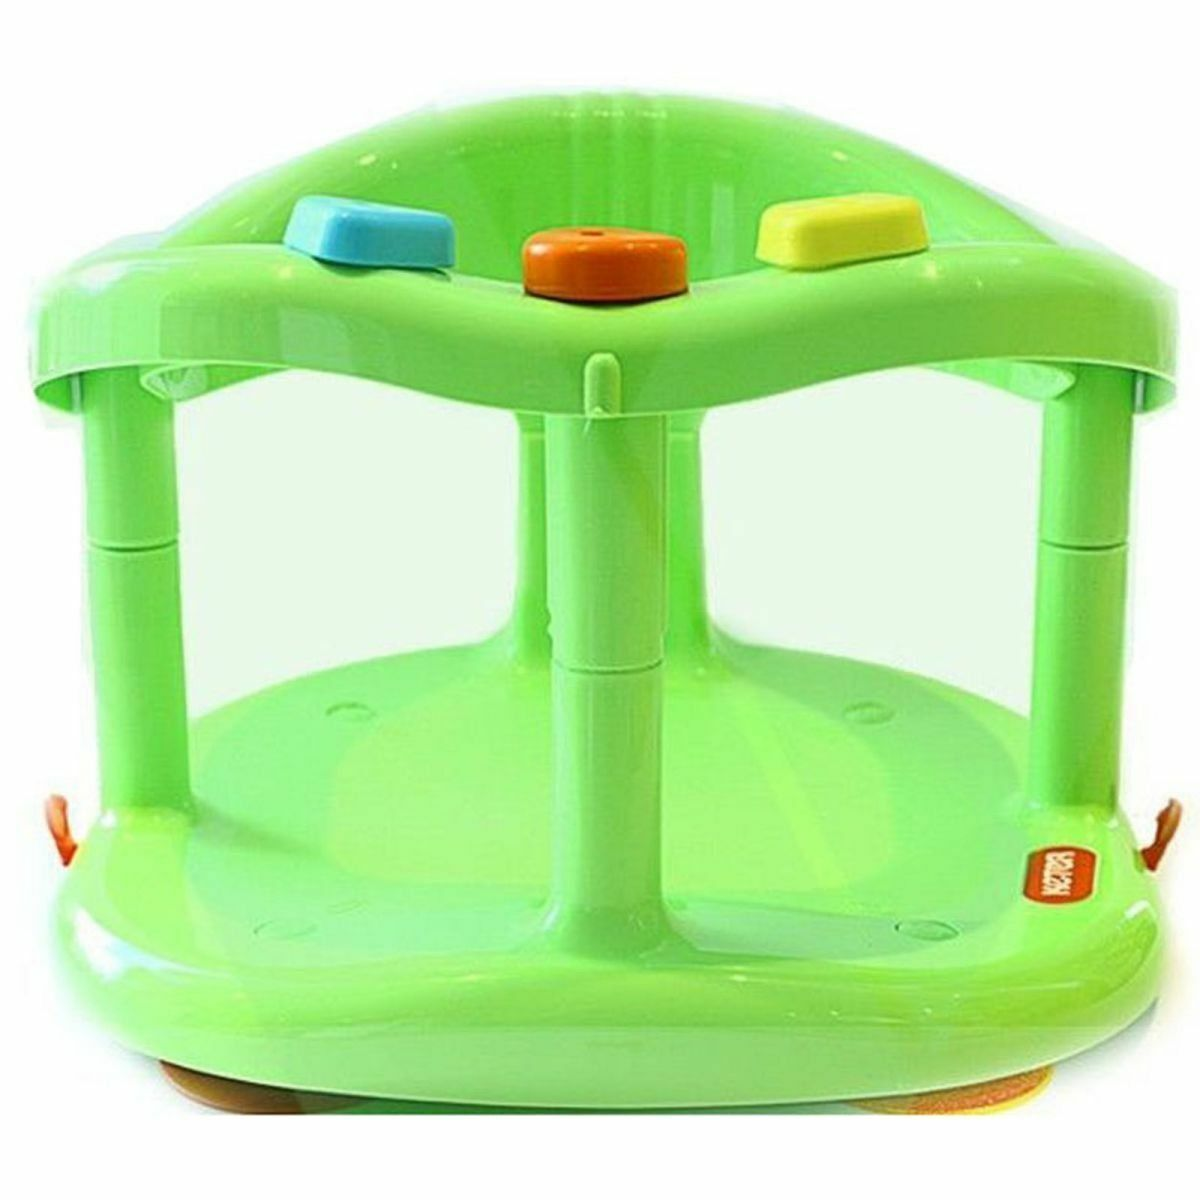 Baby Safe Bath Tub Ring Safety Anti Slip Seat Chair Keter Infant ...